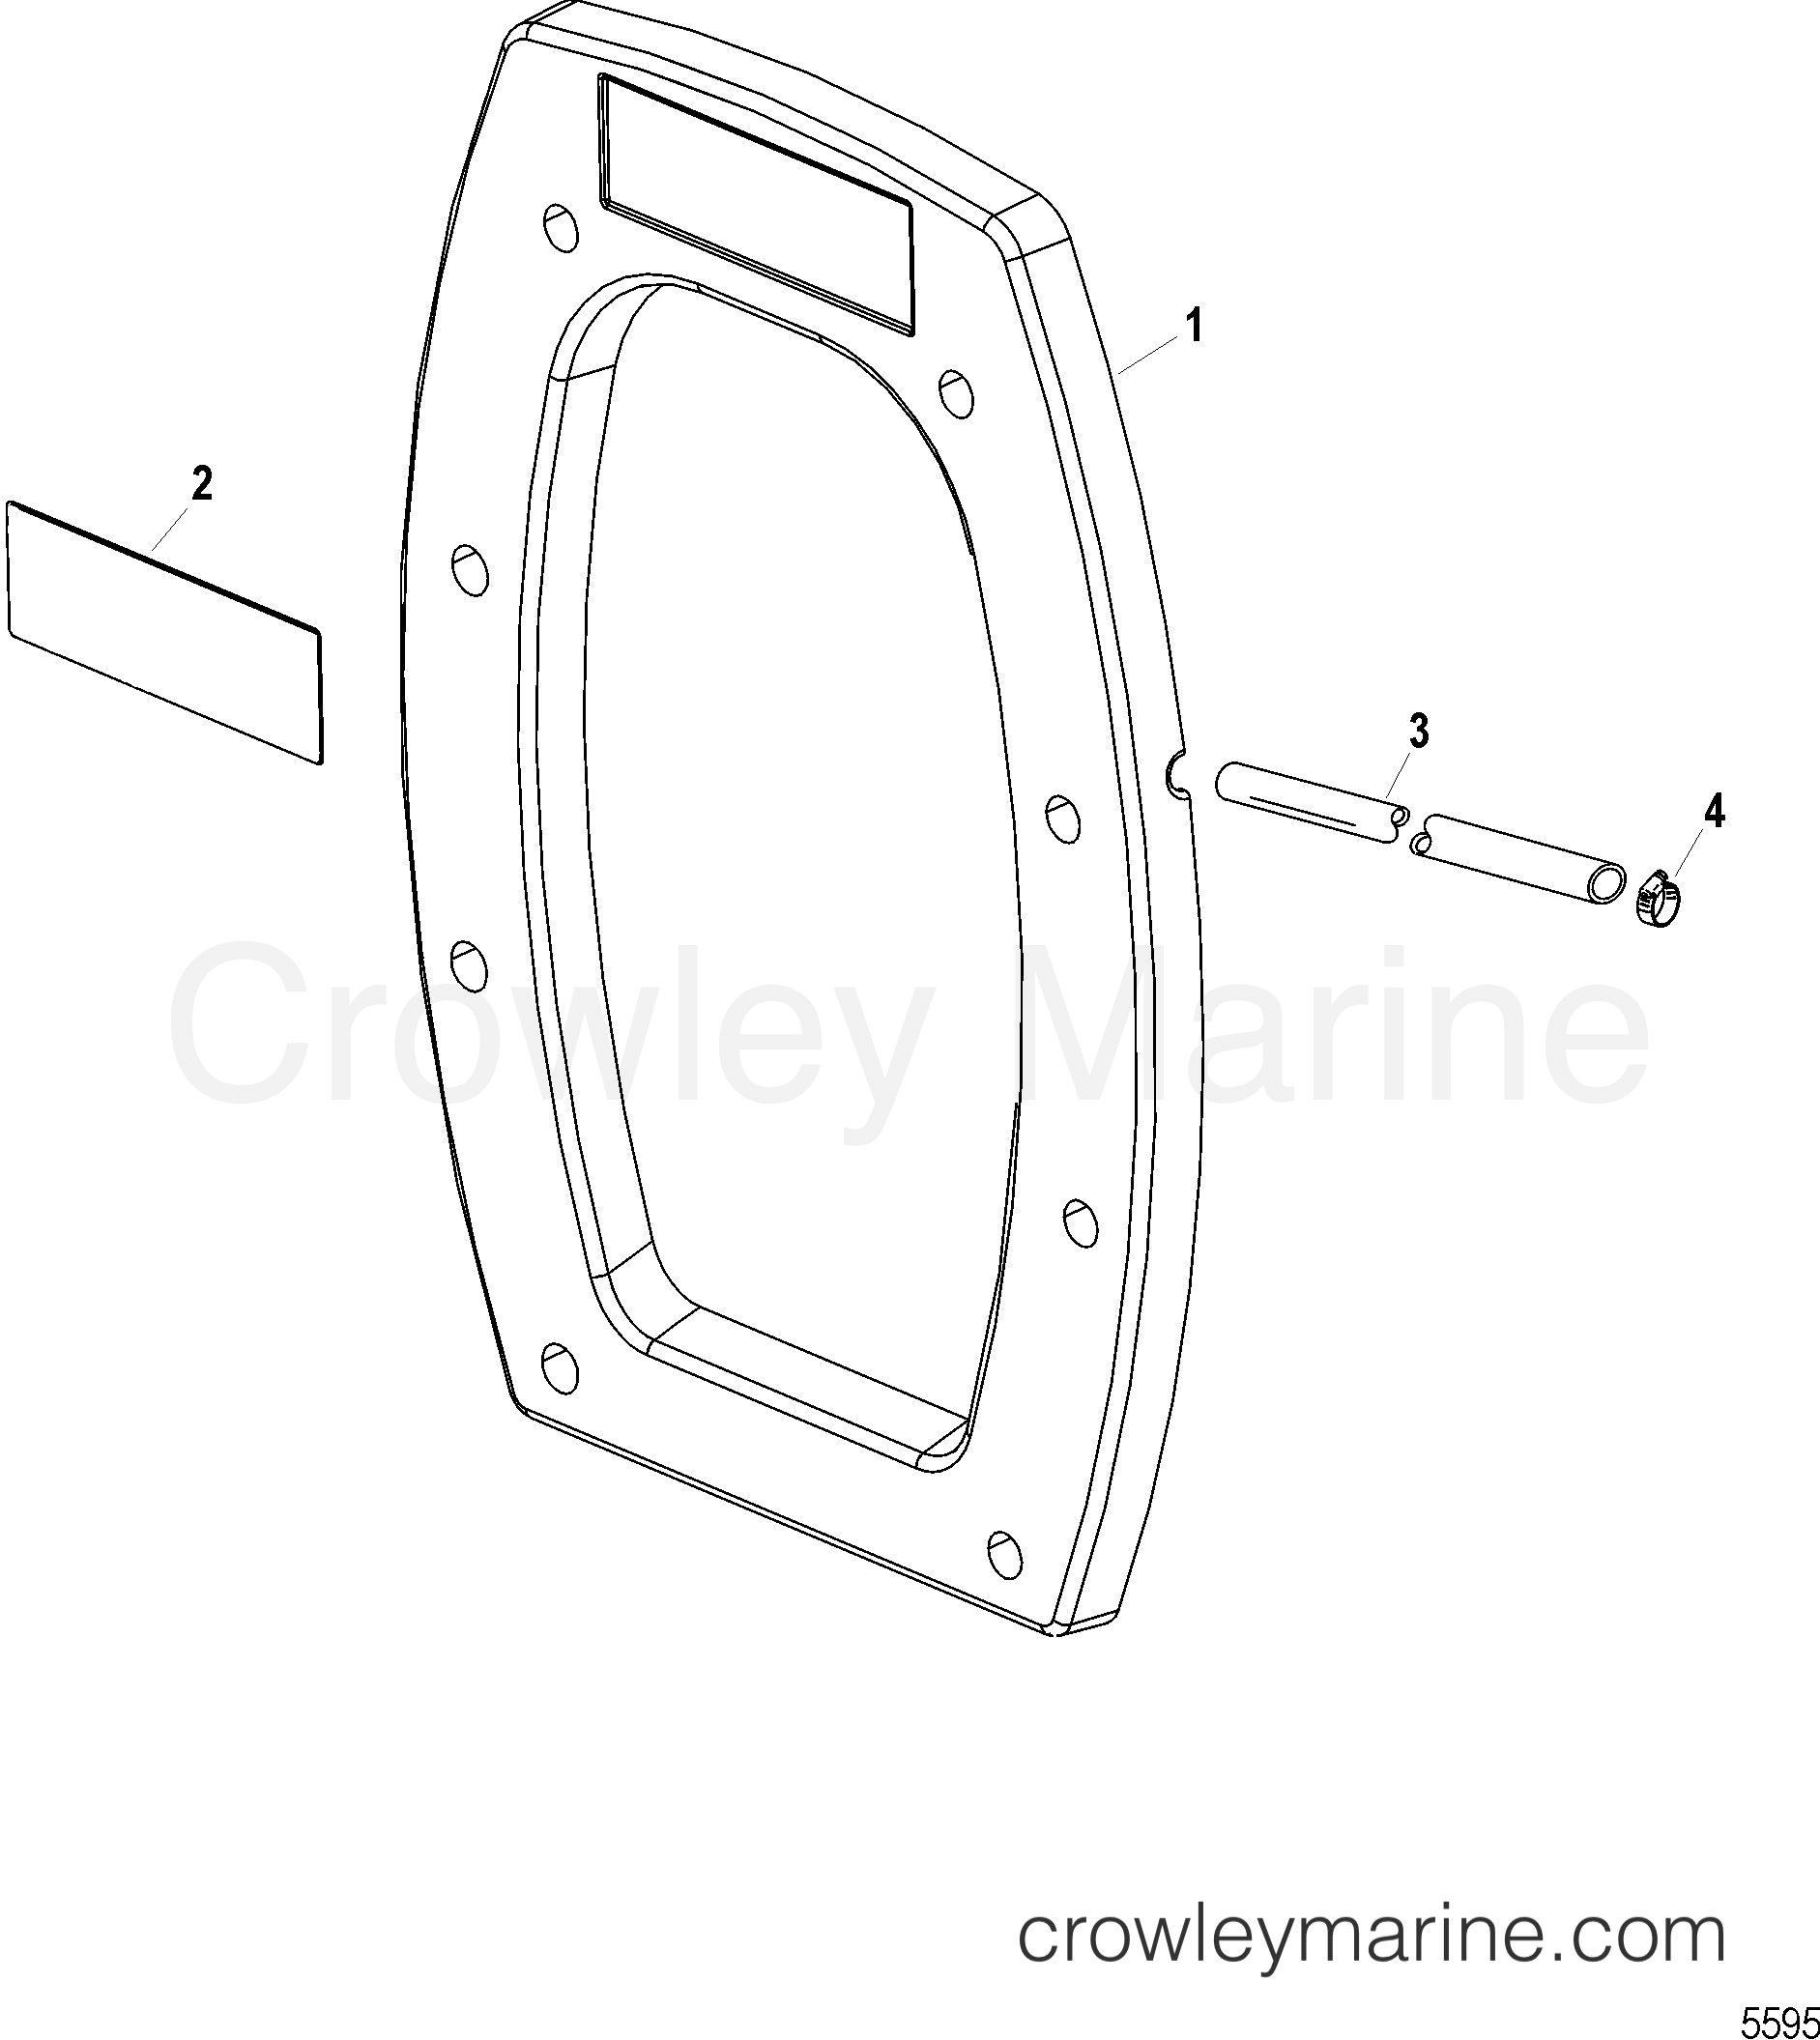 1993 Mercruiser Race Sterndrive SSM7 [1.217:1] - 5814217FH - INNER TRANSOM PLATE ASSEMBLY(DRY SUMP SIX) section